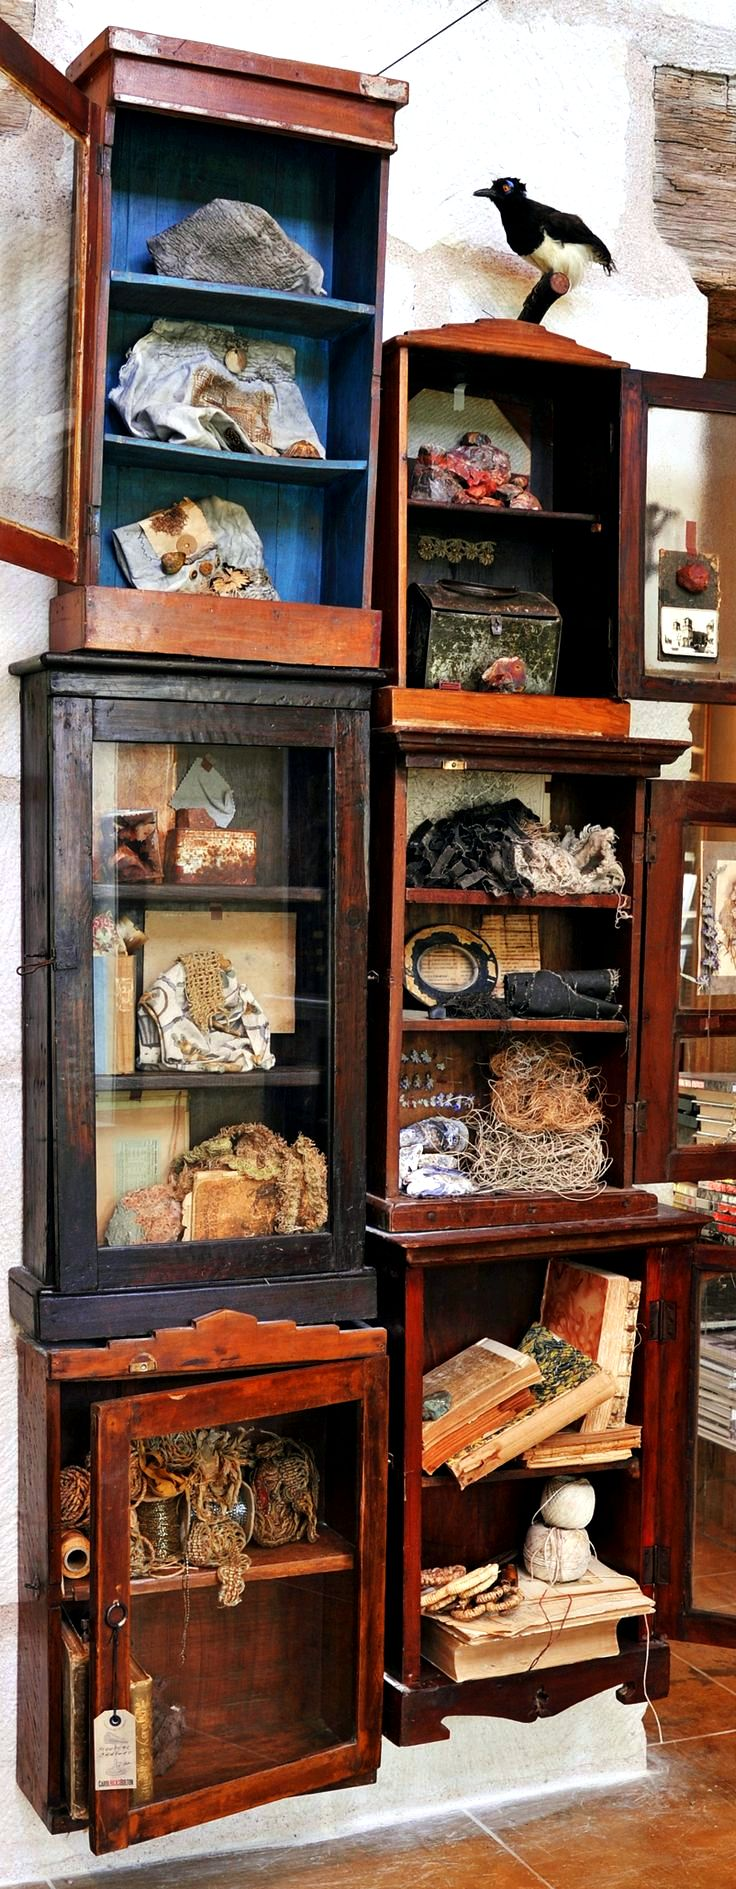 Pandora's cabinet of peculiarities & remarkable curiosity shop these hairs